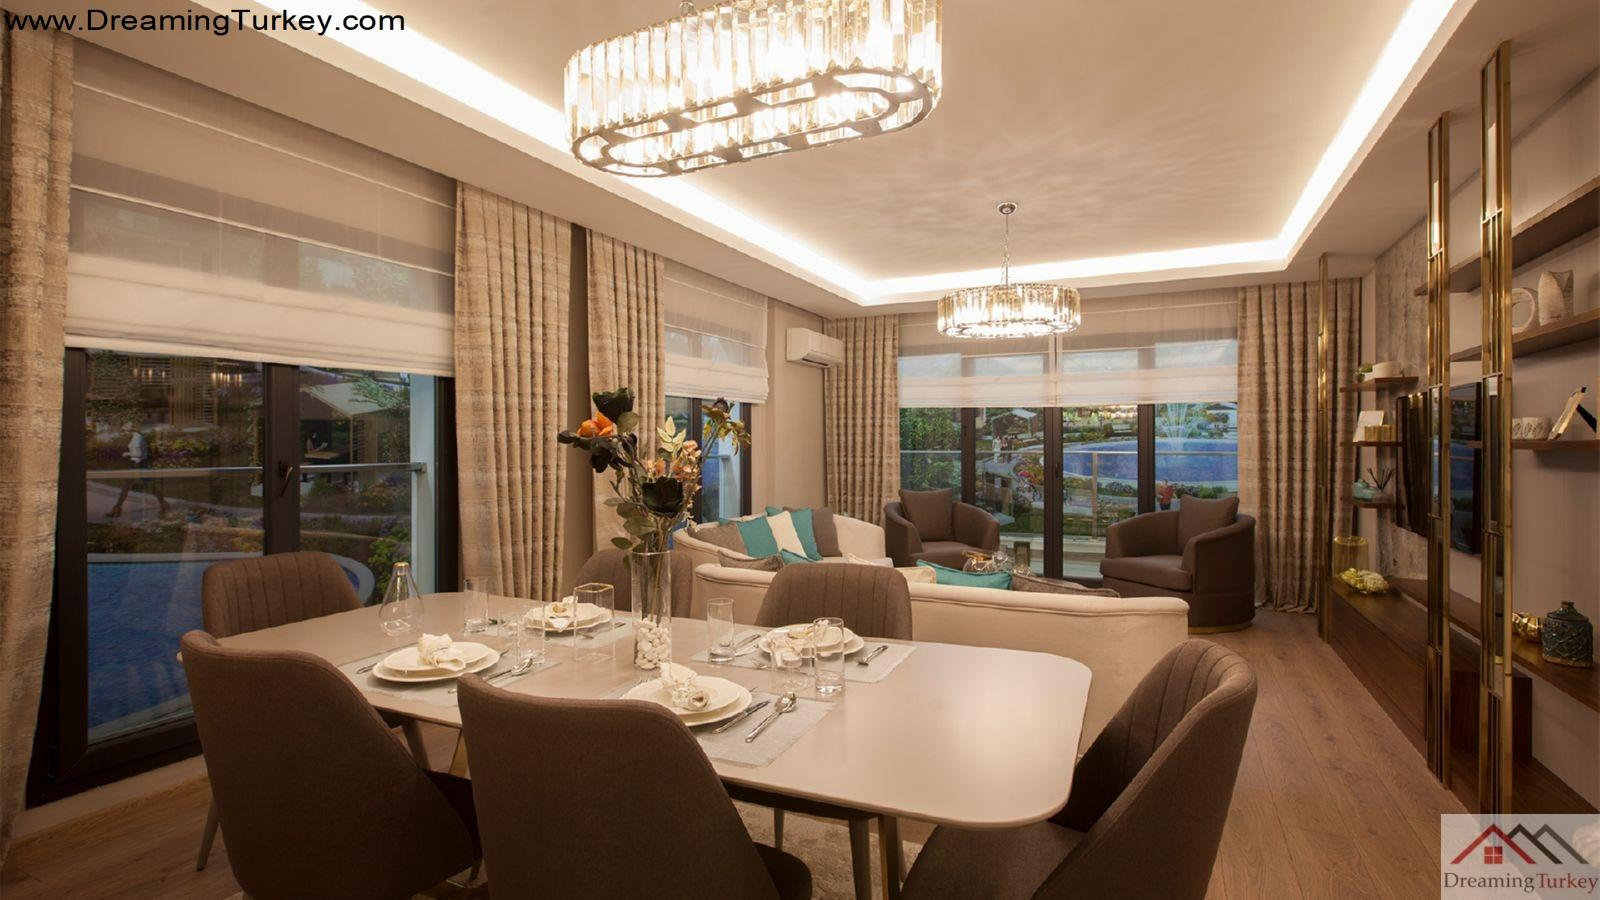 4-Bedroom Apartment inside a Luxury Complex in Istanbul